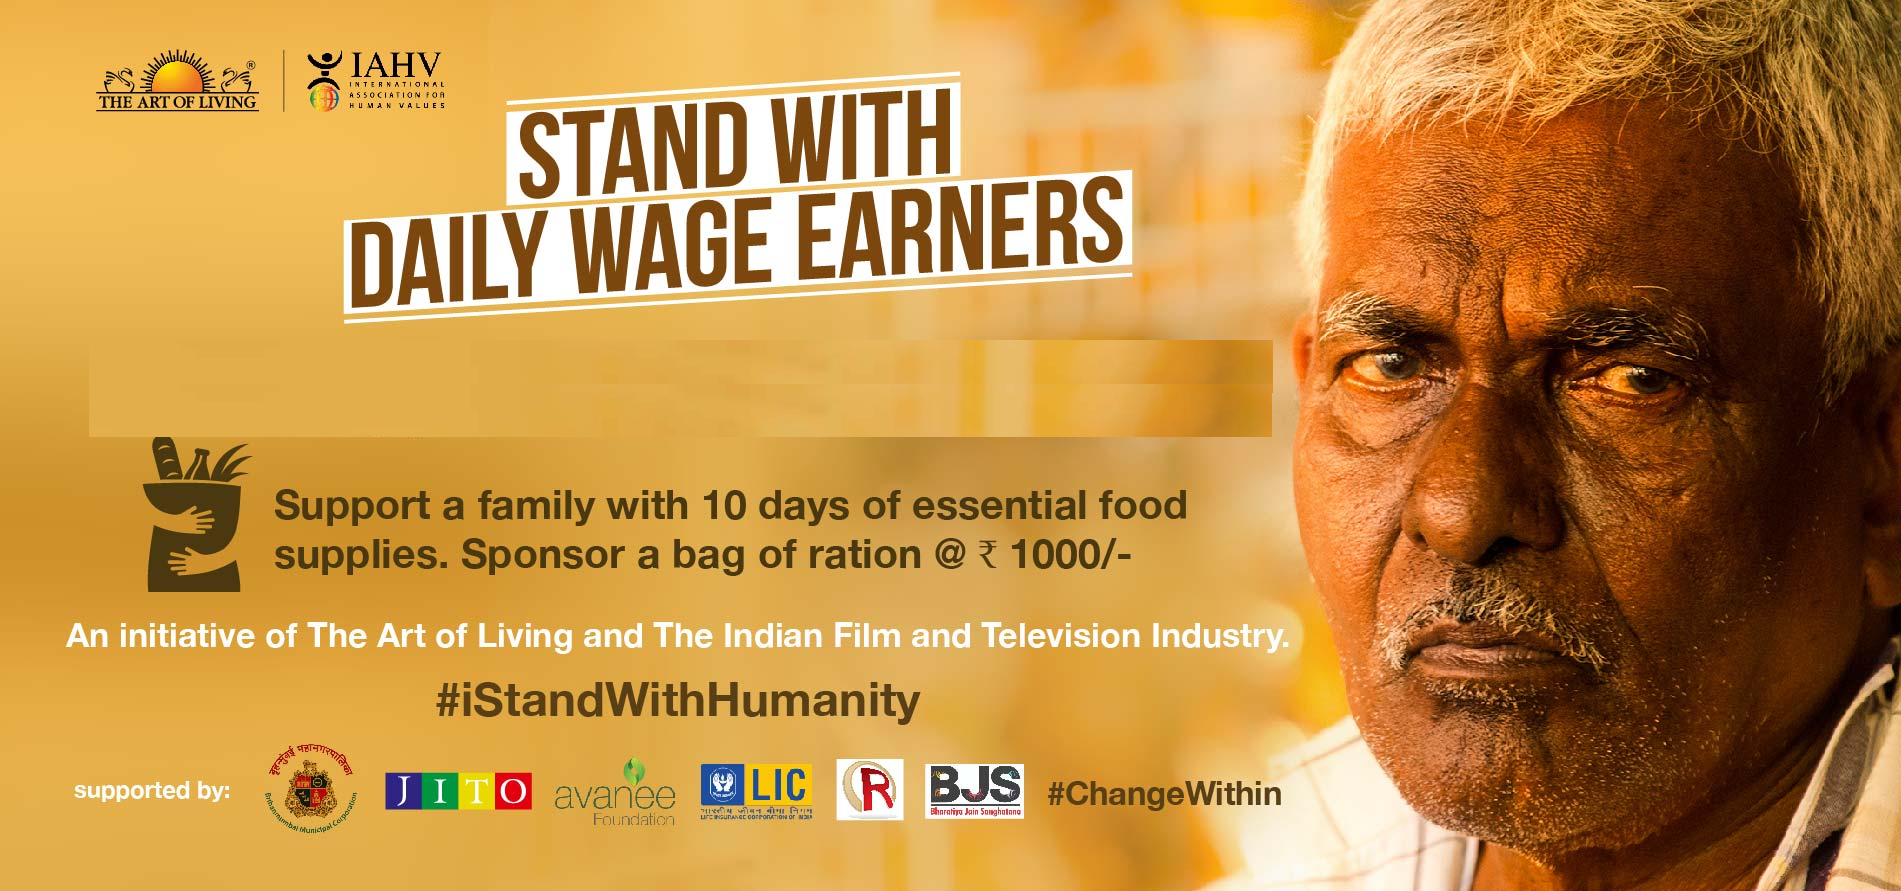 Stand with India's daily workers during Covid!